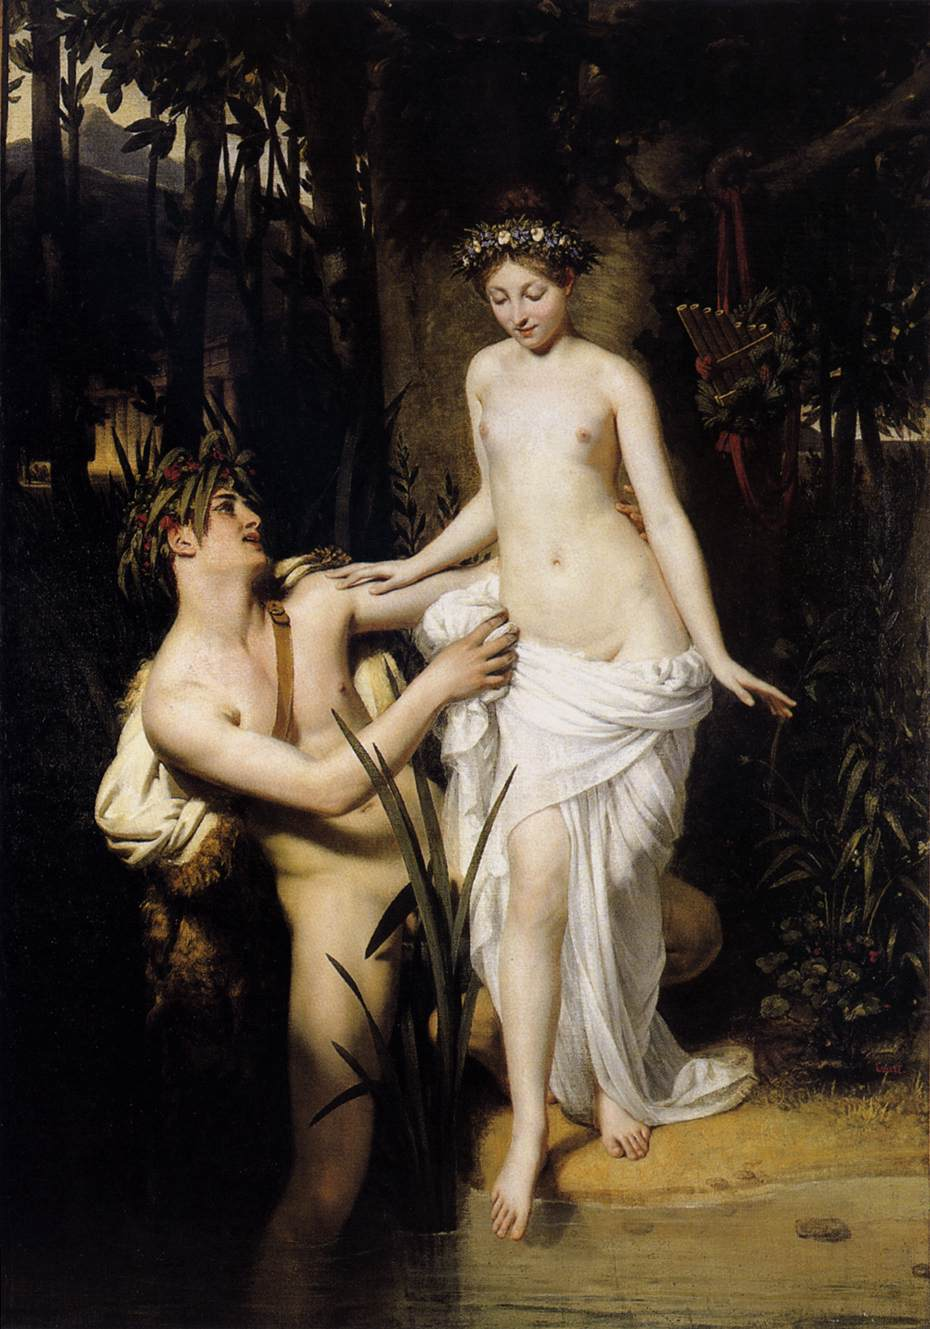 https://i1.wp.com/www.sightswithin.com/Joseph-Desire.Court/Young_Girl_at_the_Scamander_River.jpg